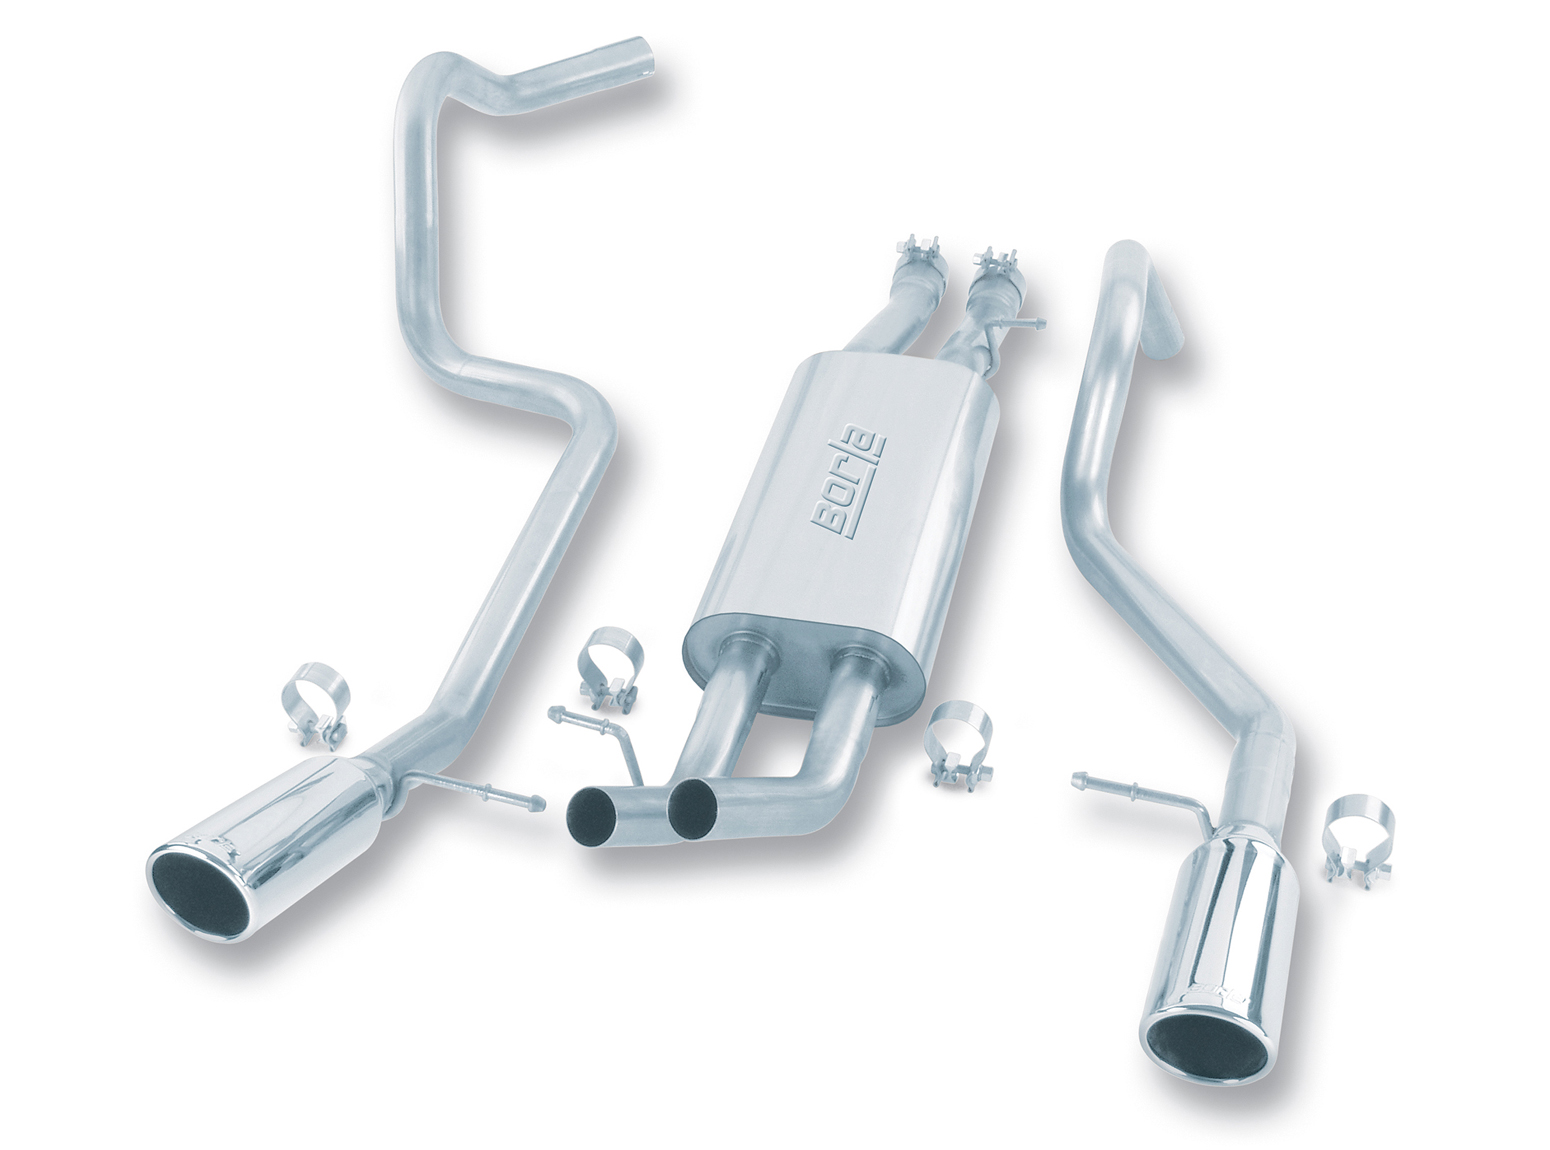 "Gmc Sierra 1500 6.0l V8 (incl Hd) 2001-2007 Borla 2.75"", 2.25"" Cat-Back Exhaust System - Single Round Rolled Angle-Cut  Long X Single Round Rolled Angle-Cut Intercooled"" Dia"